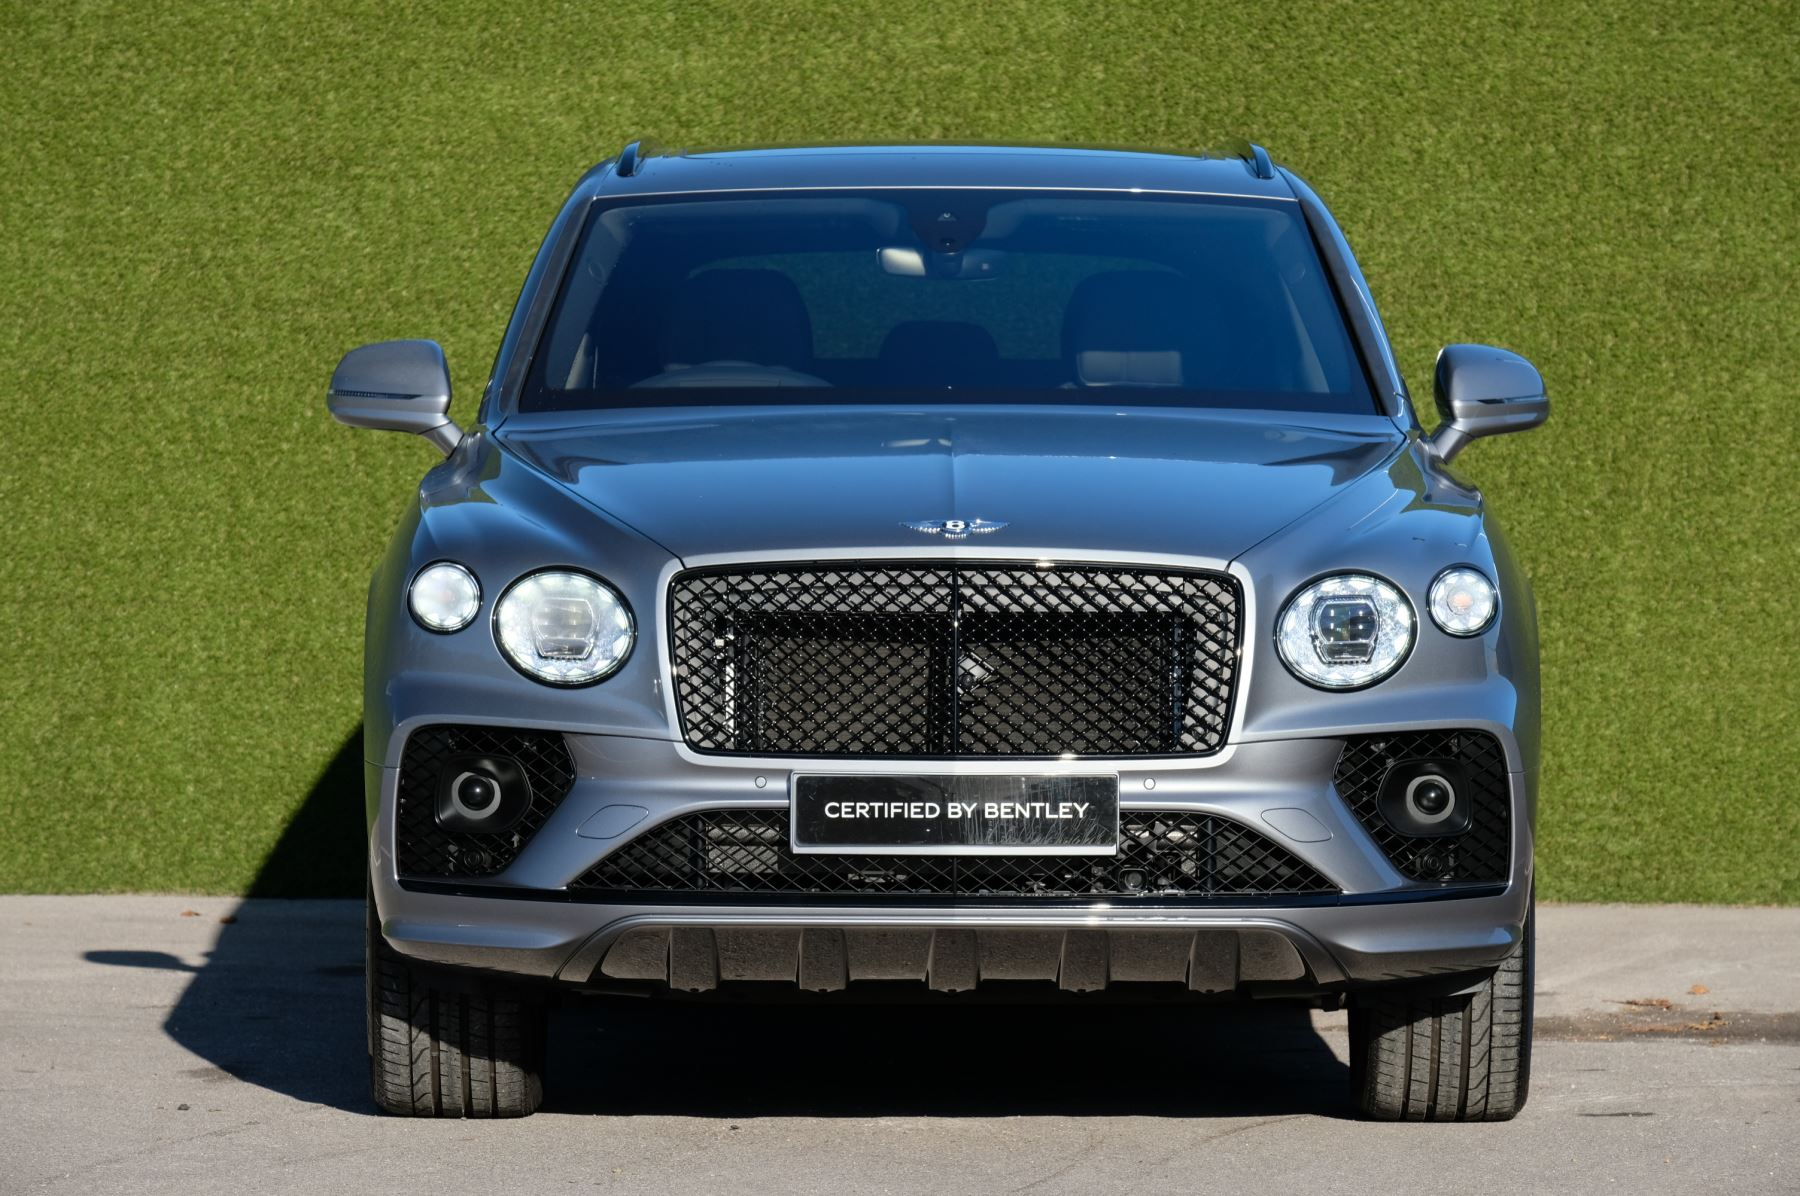 Bentley Bentayga 4.0 V8 First Edition 5dr Auto - Mulling Driving Specification image 2